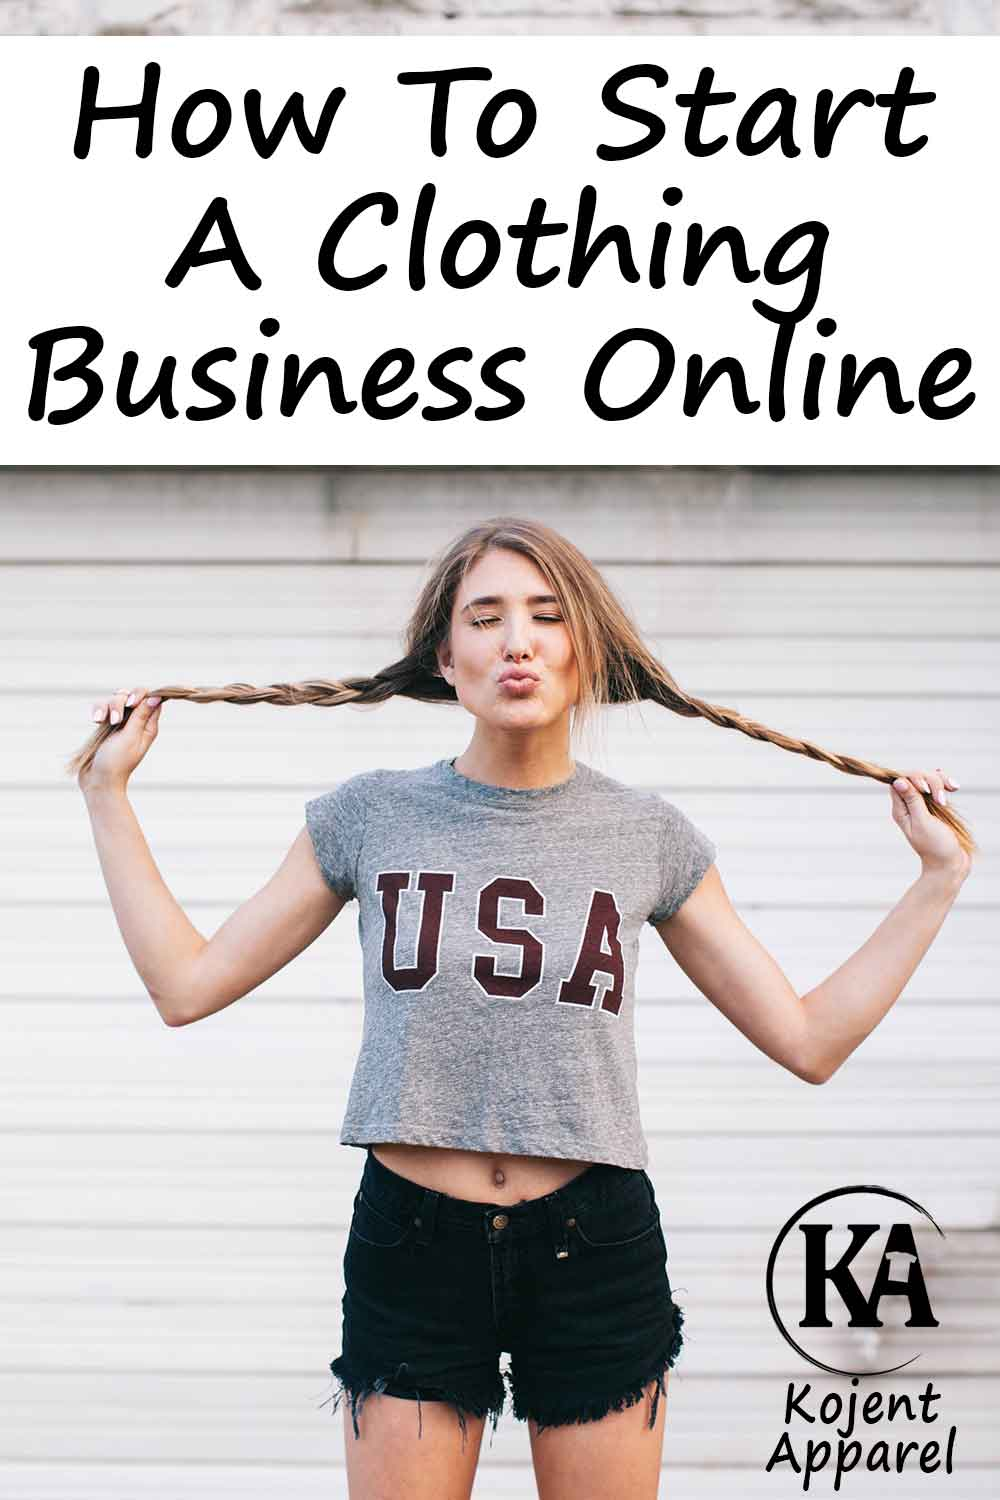 How To Start A Clothing Business Online - Kojent Apparel